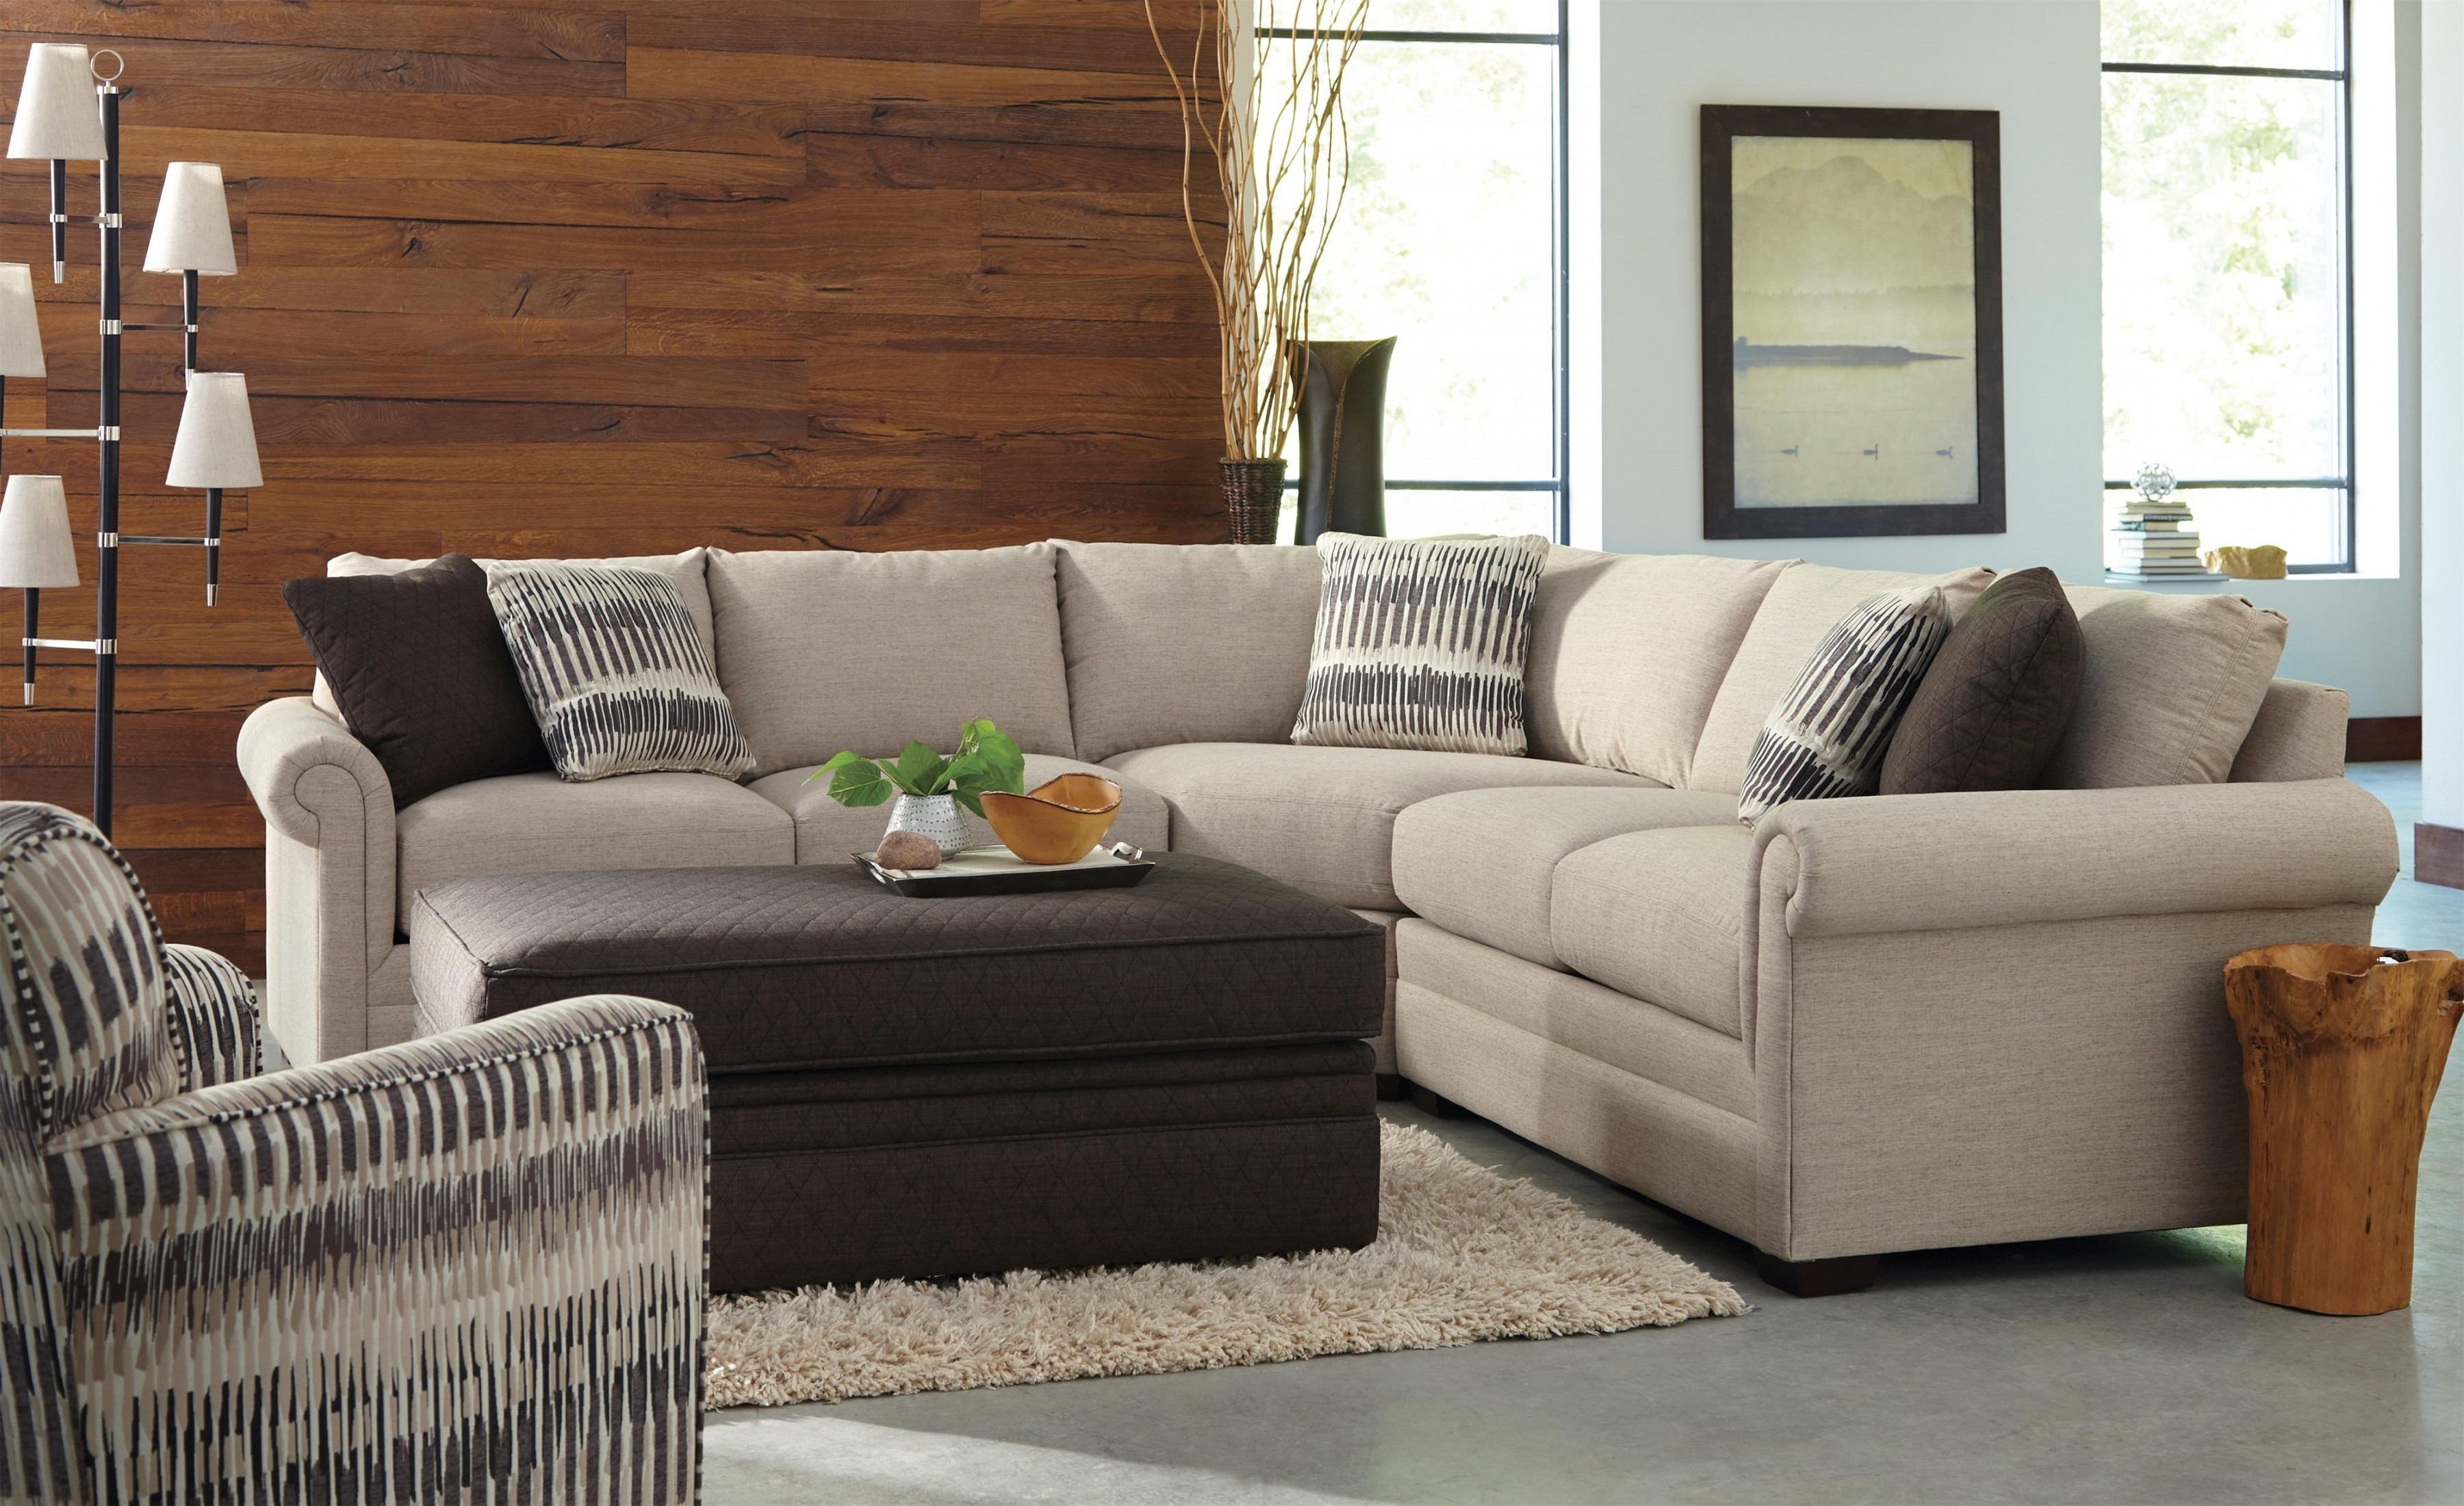 Dillards Sectional Sofas For Widely Used Leather Sofa Dillards (Gallery 8 of 20)